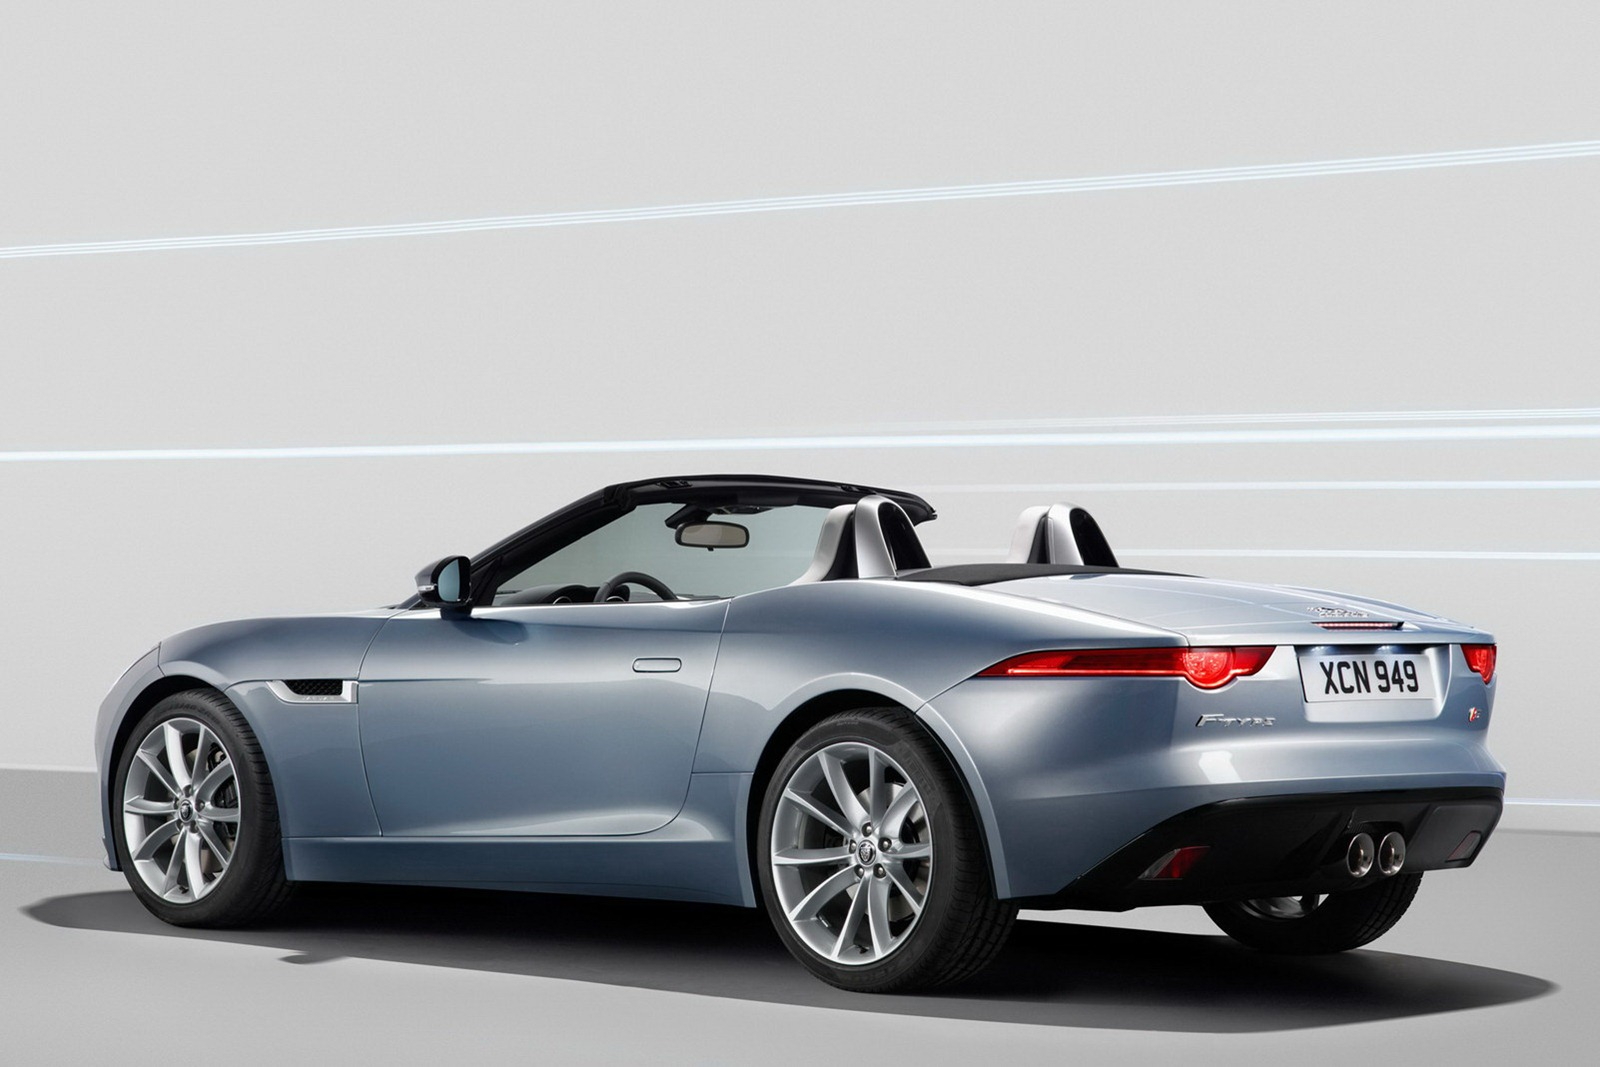 jaguar f type specs prices and sportcar otomild. Cars Review. Best American Auto & Cars Review